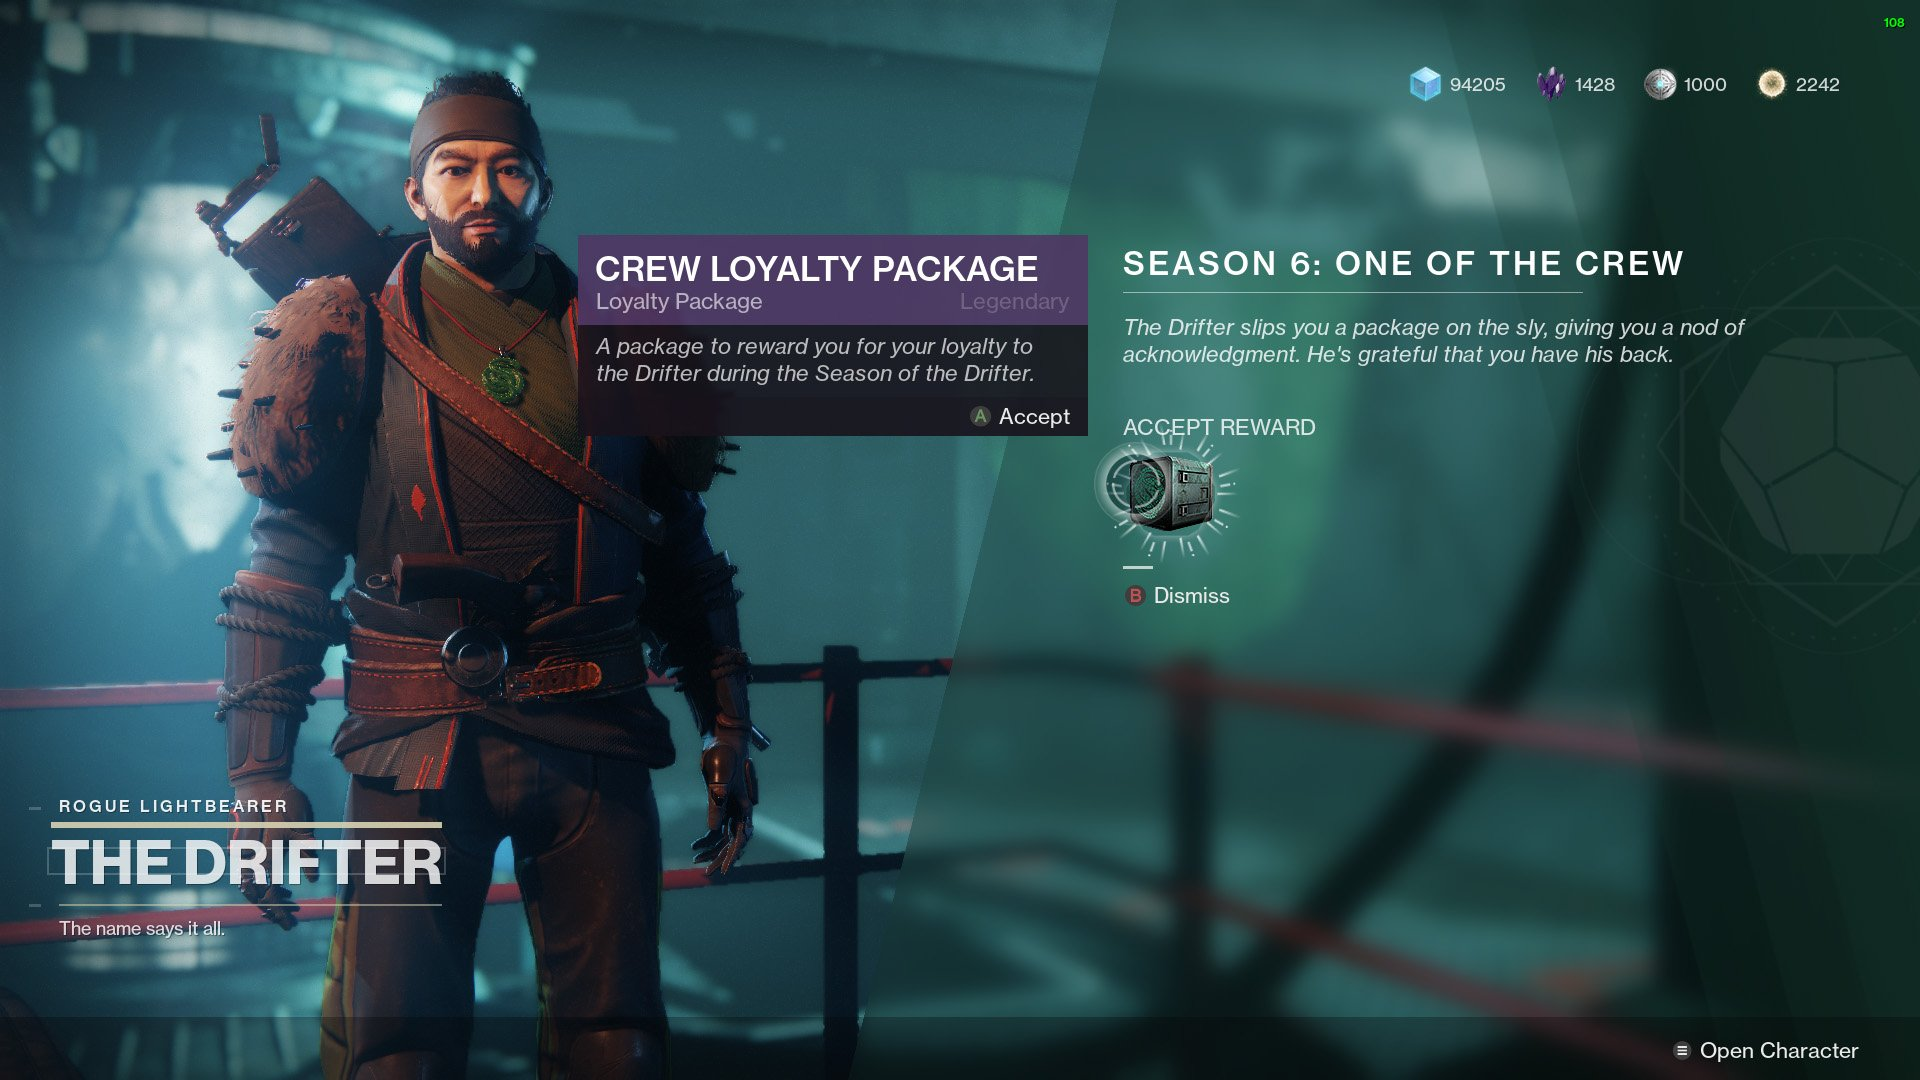 Destiny 2 Allegiance Drifter Crew Loyalty Package